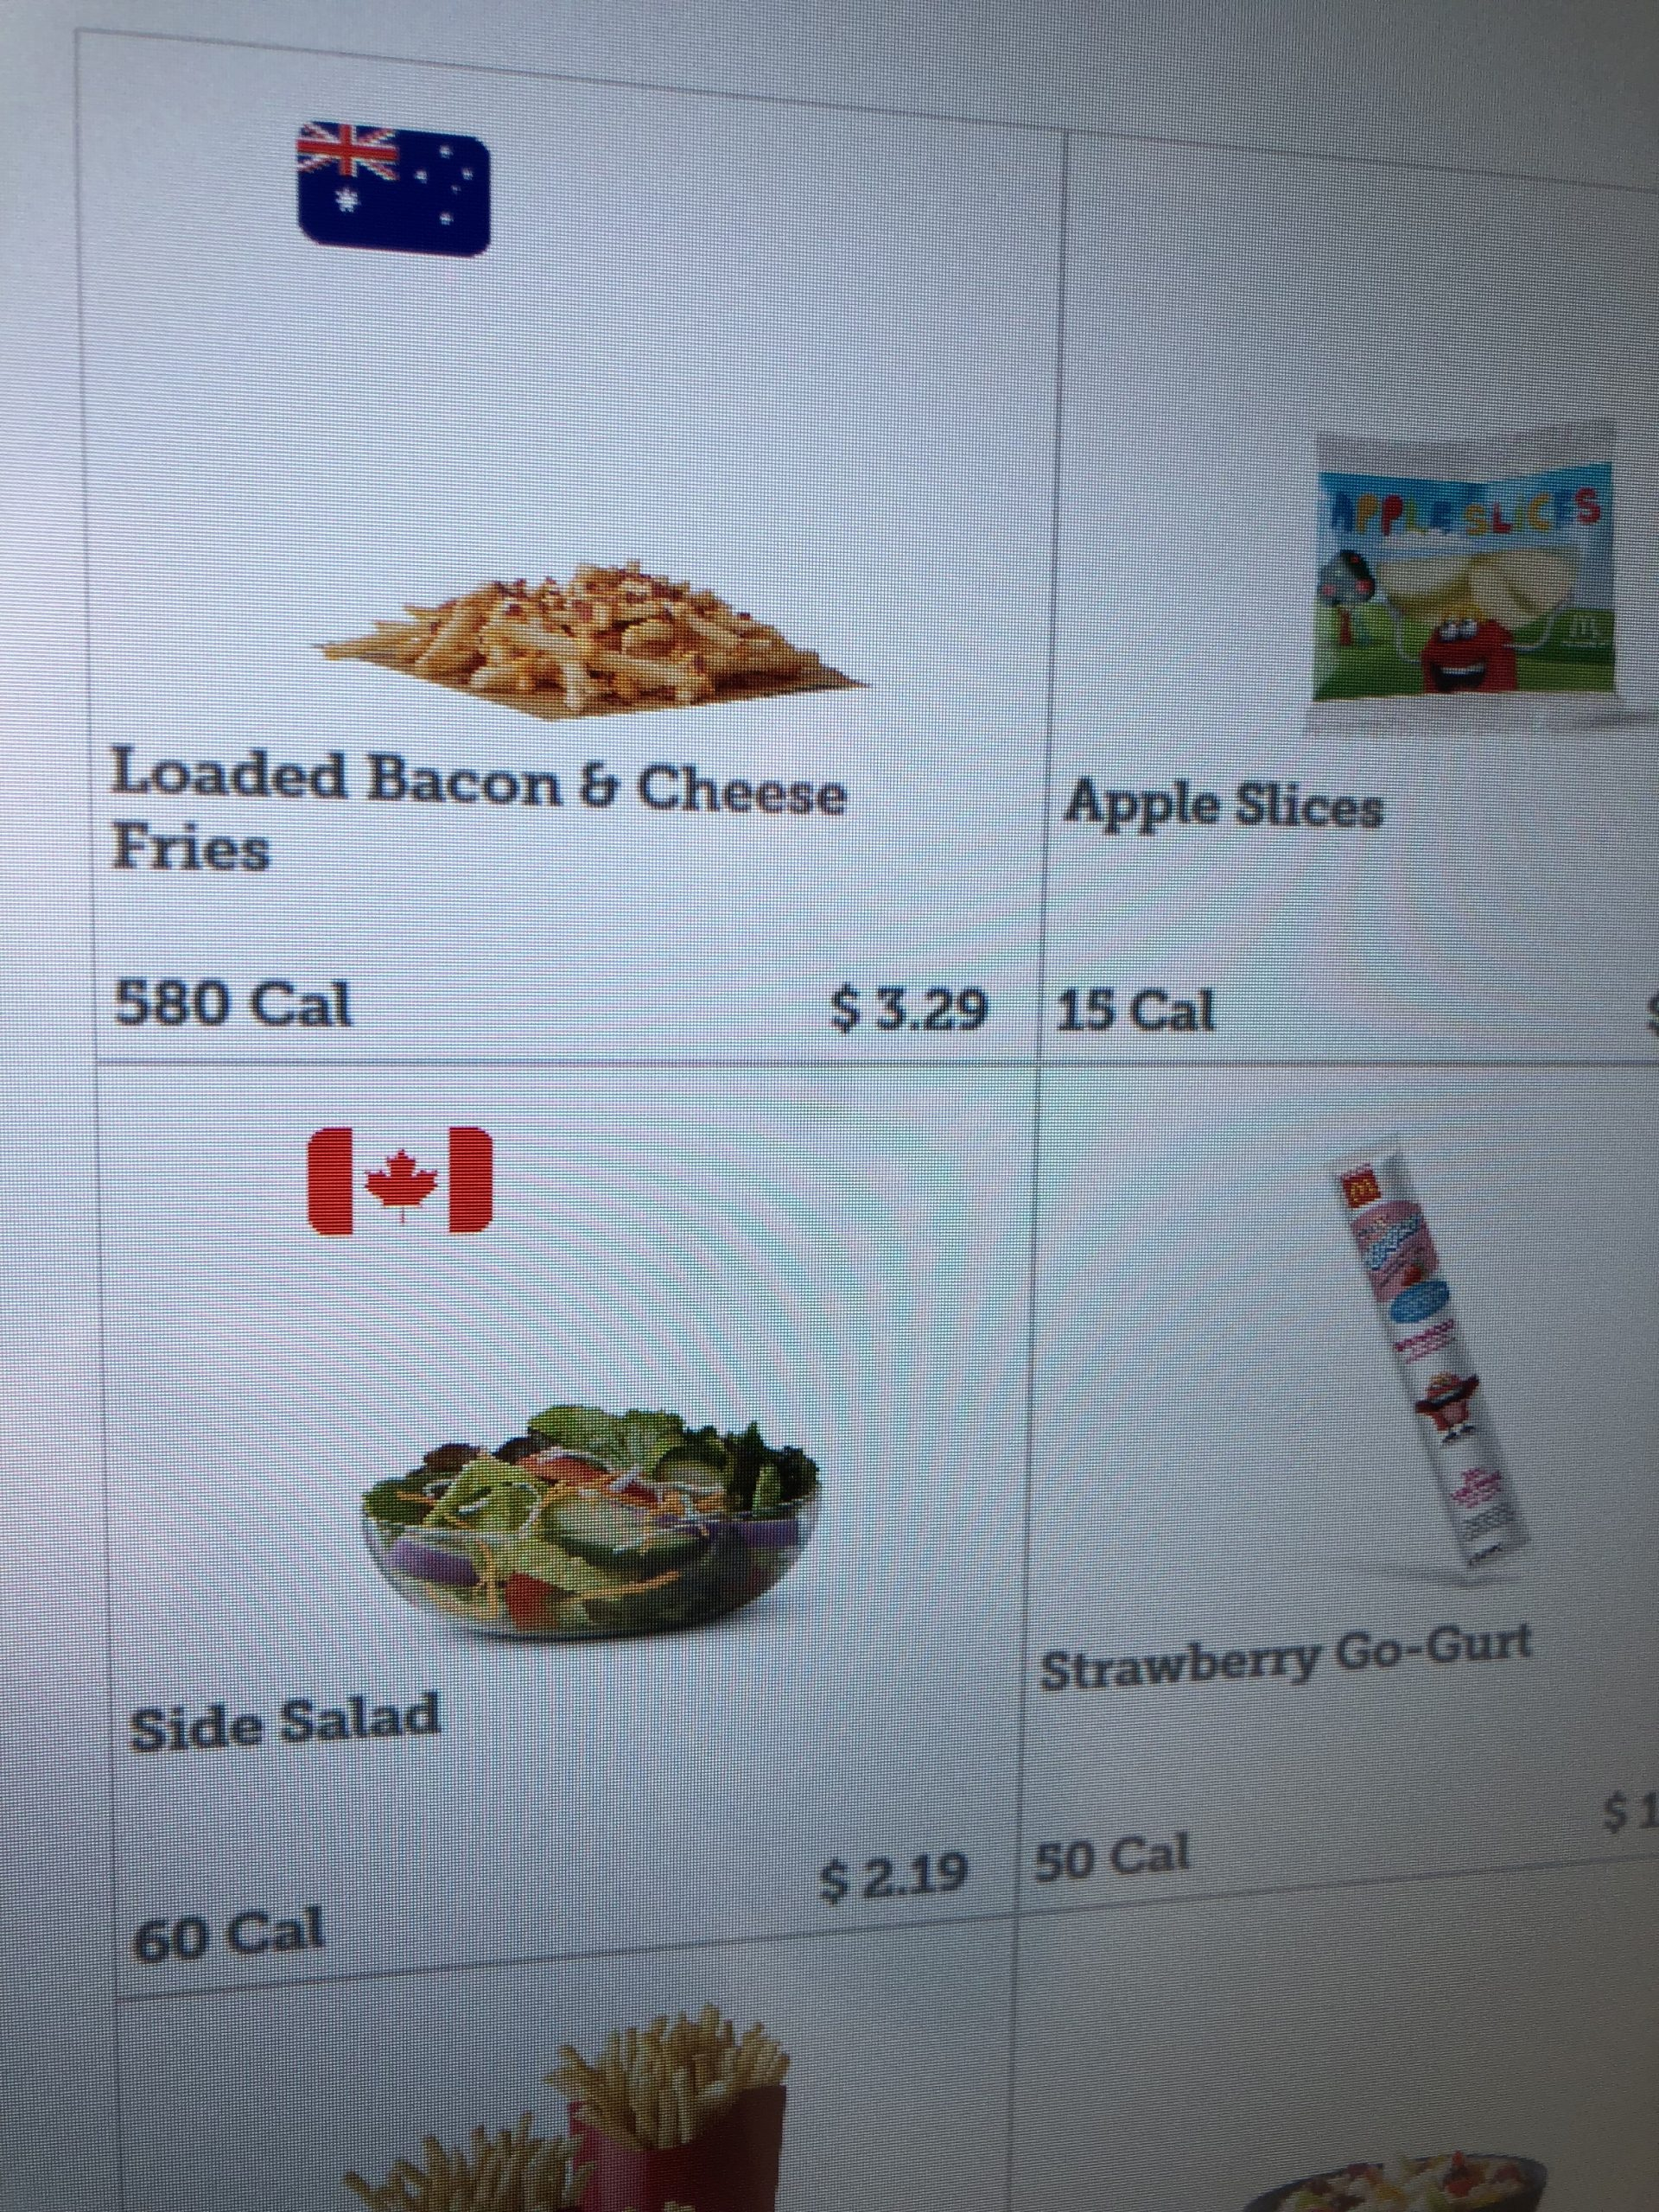 Side salads are . . . Canadian?